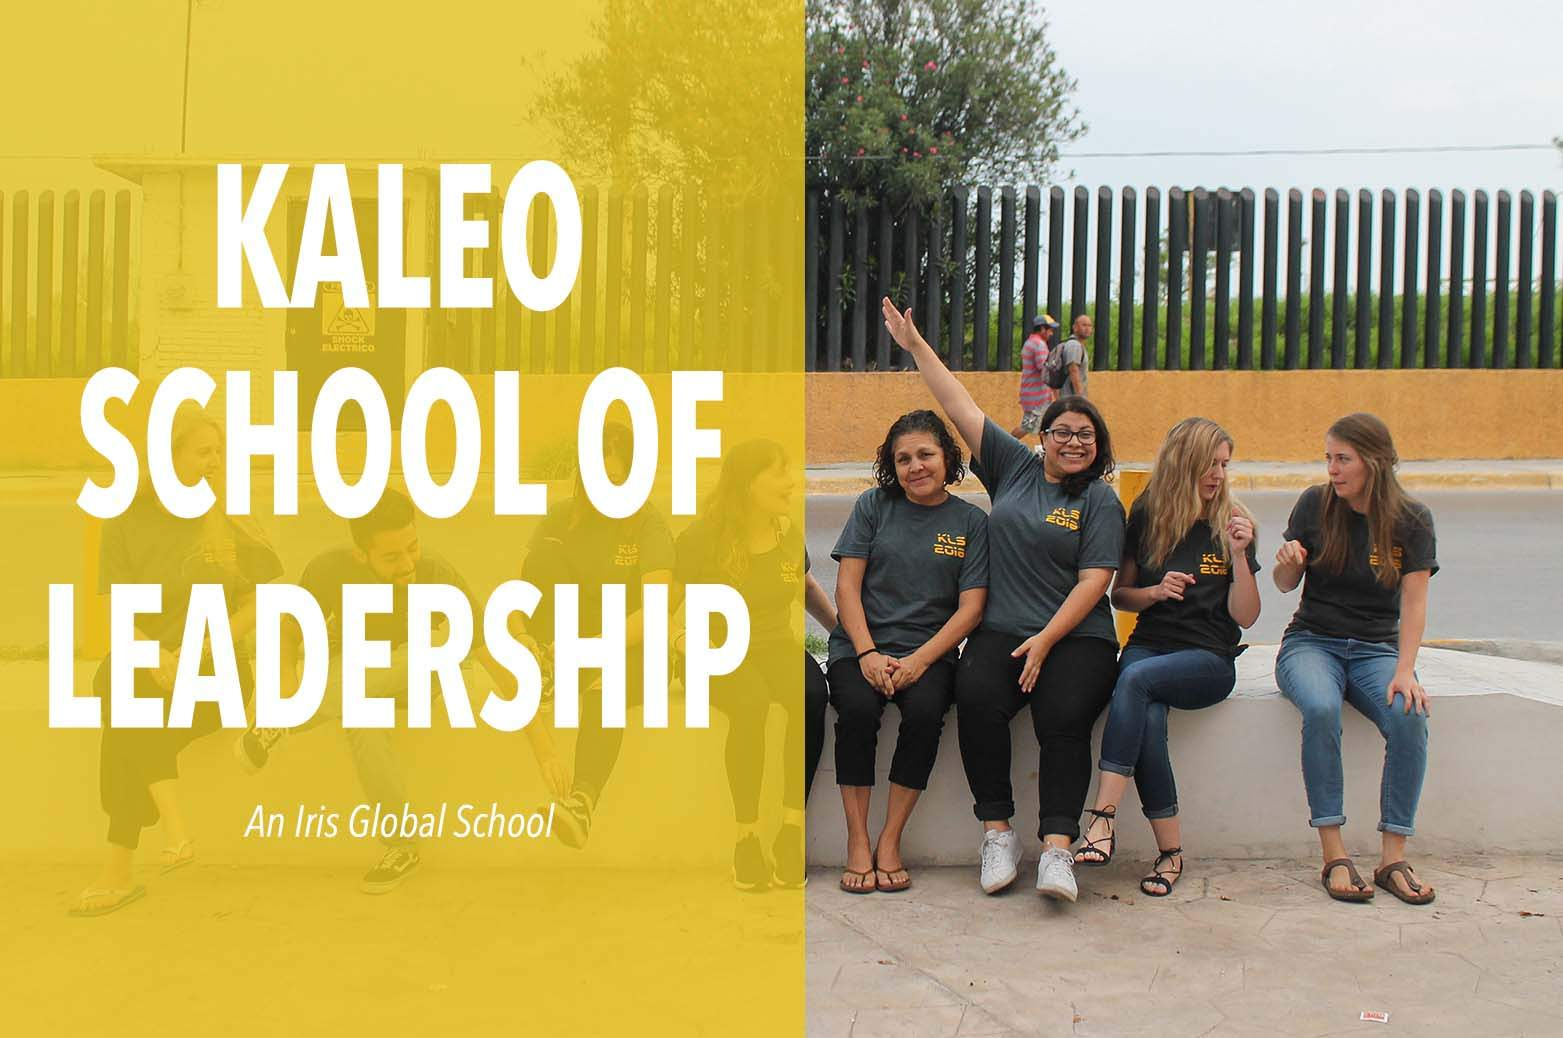 kaleo_leadership_school_header